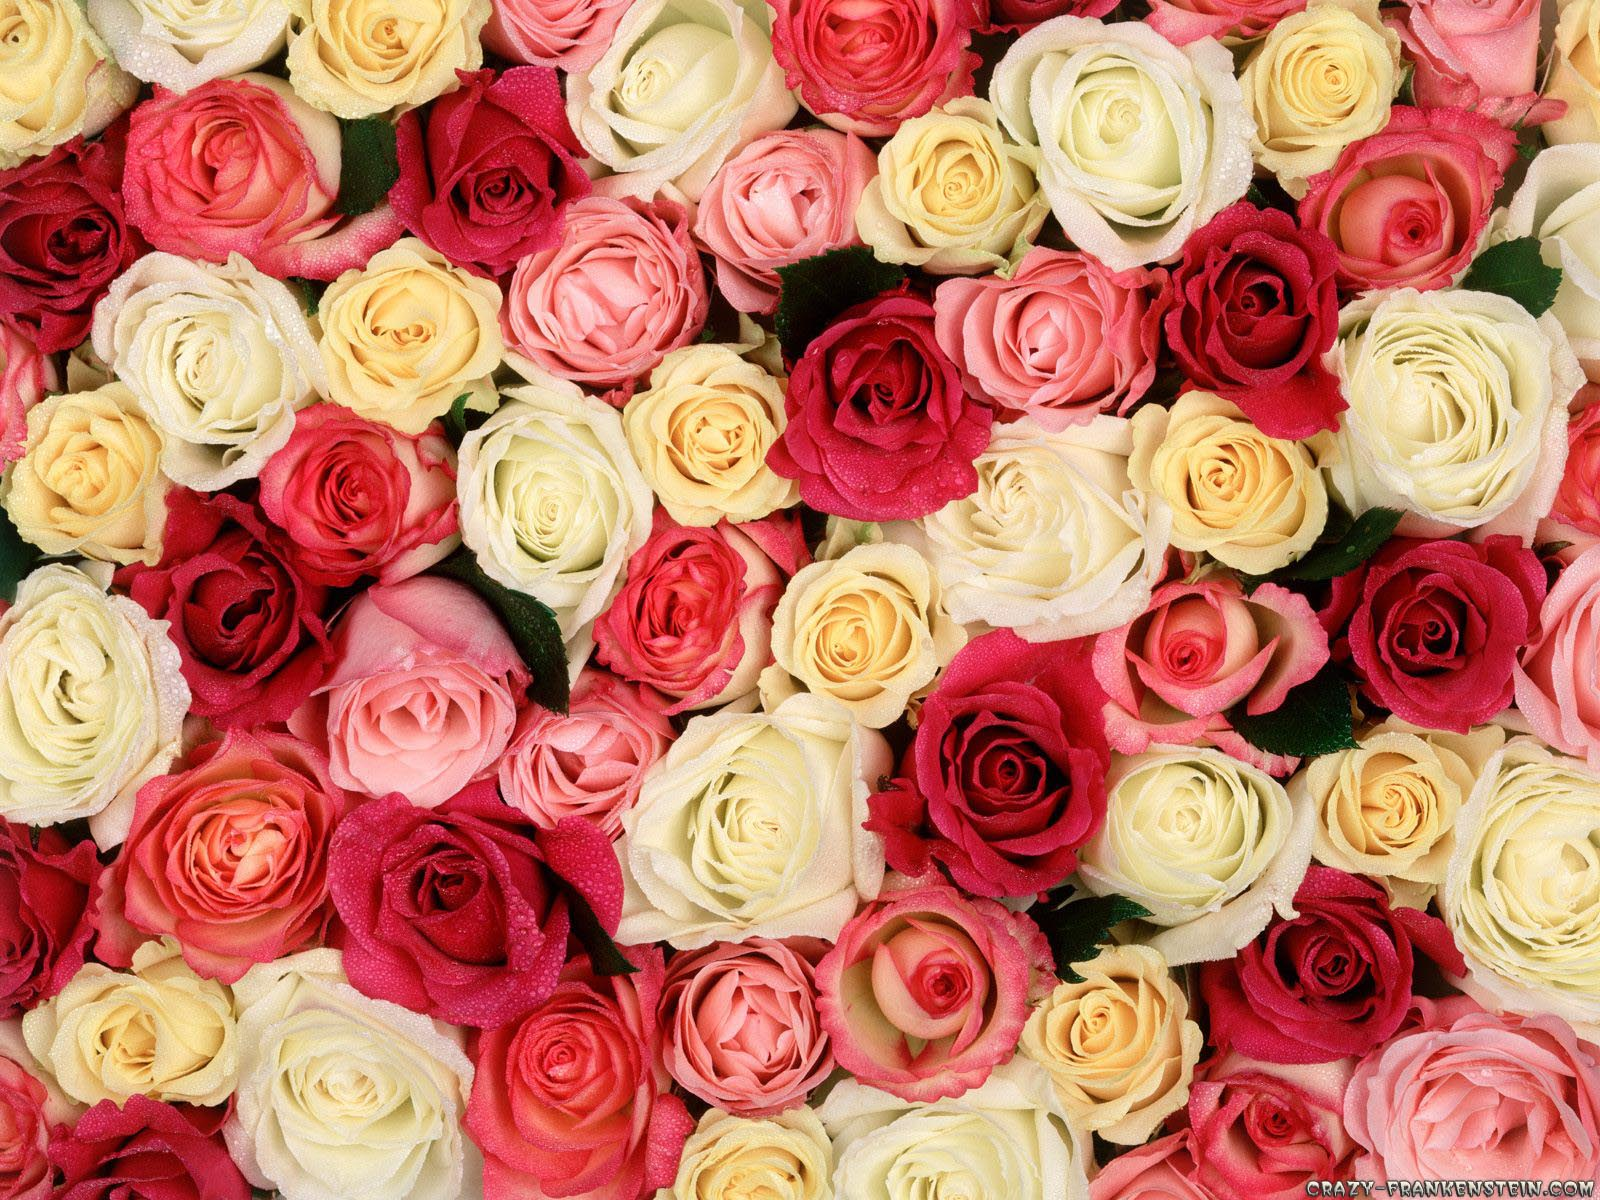 Wallpaper: Fragrant Roses Resolution: 1024x768 | 1600x1200